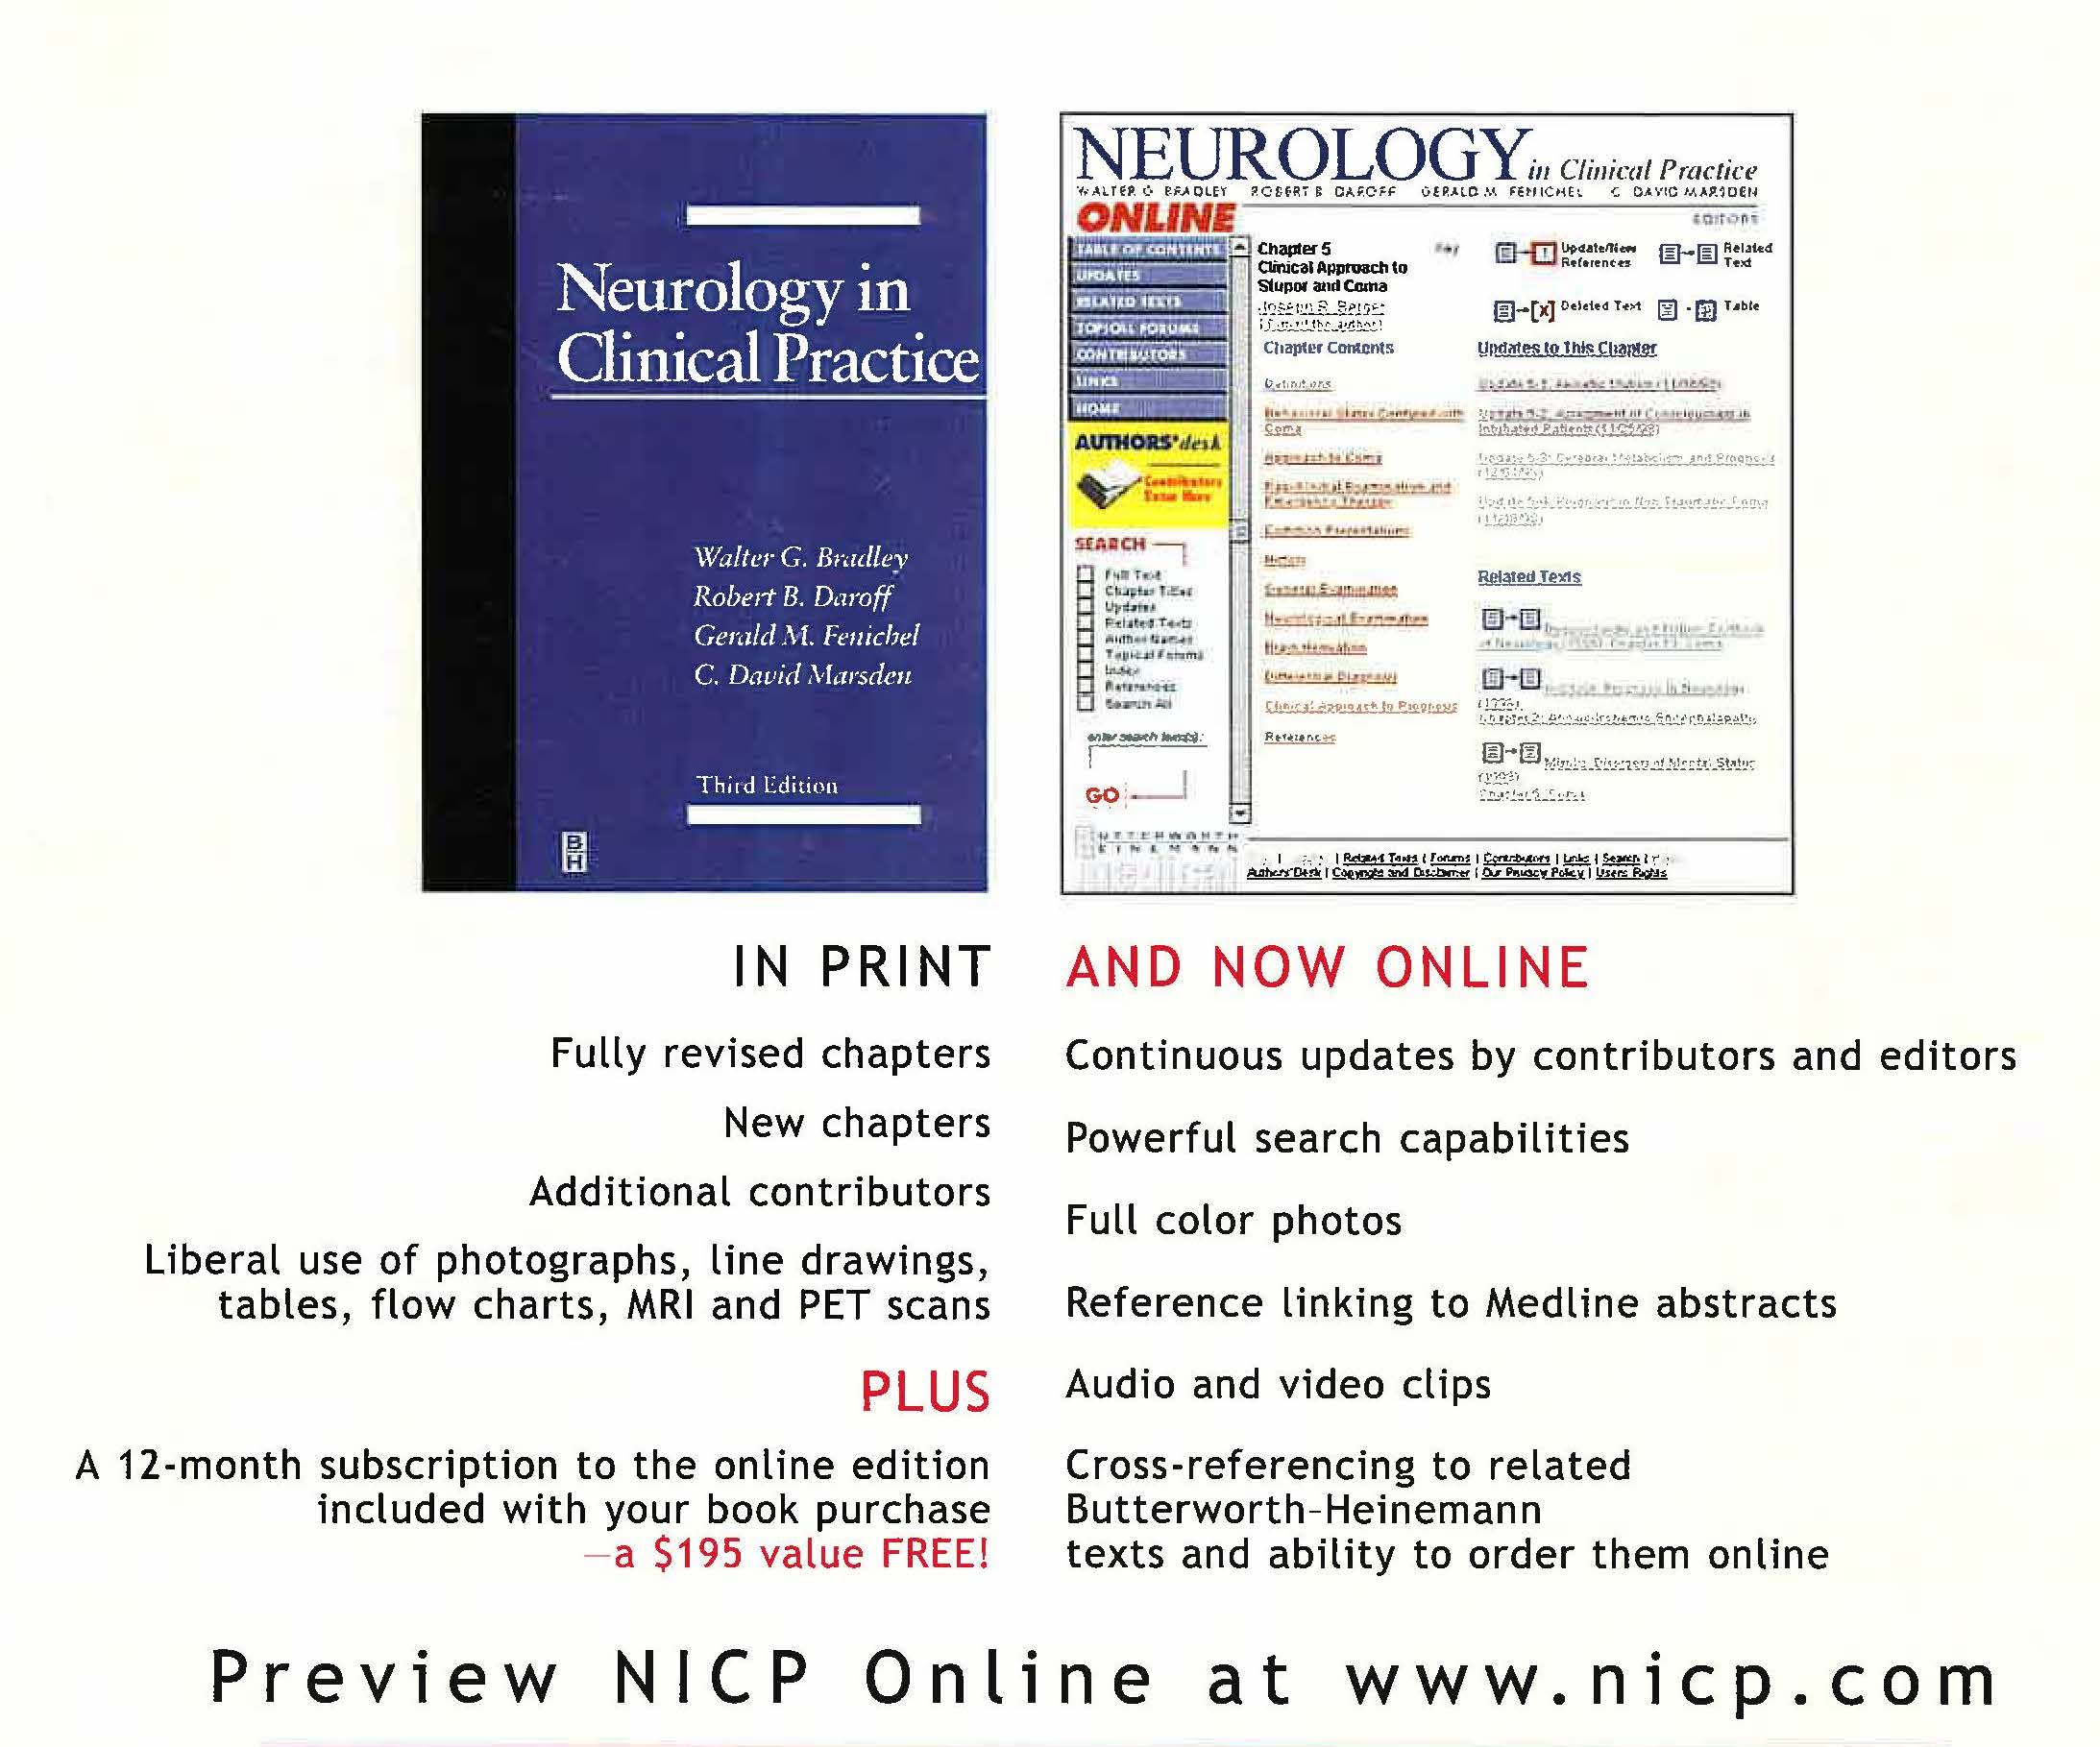 Neurology in Clinical Practice print and online editions ad